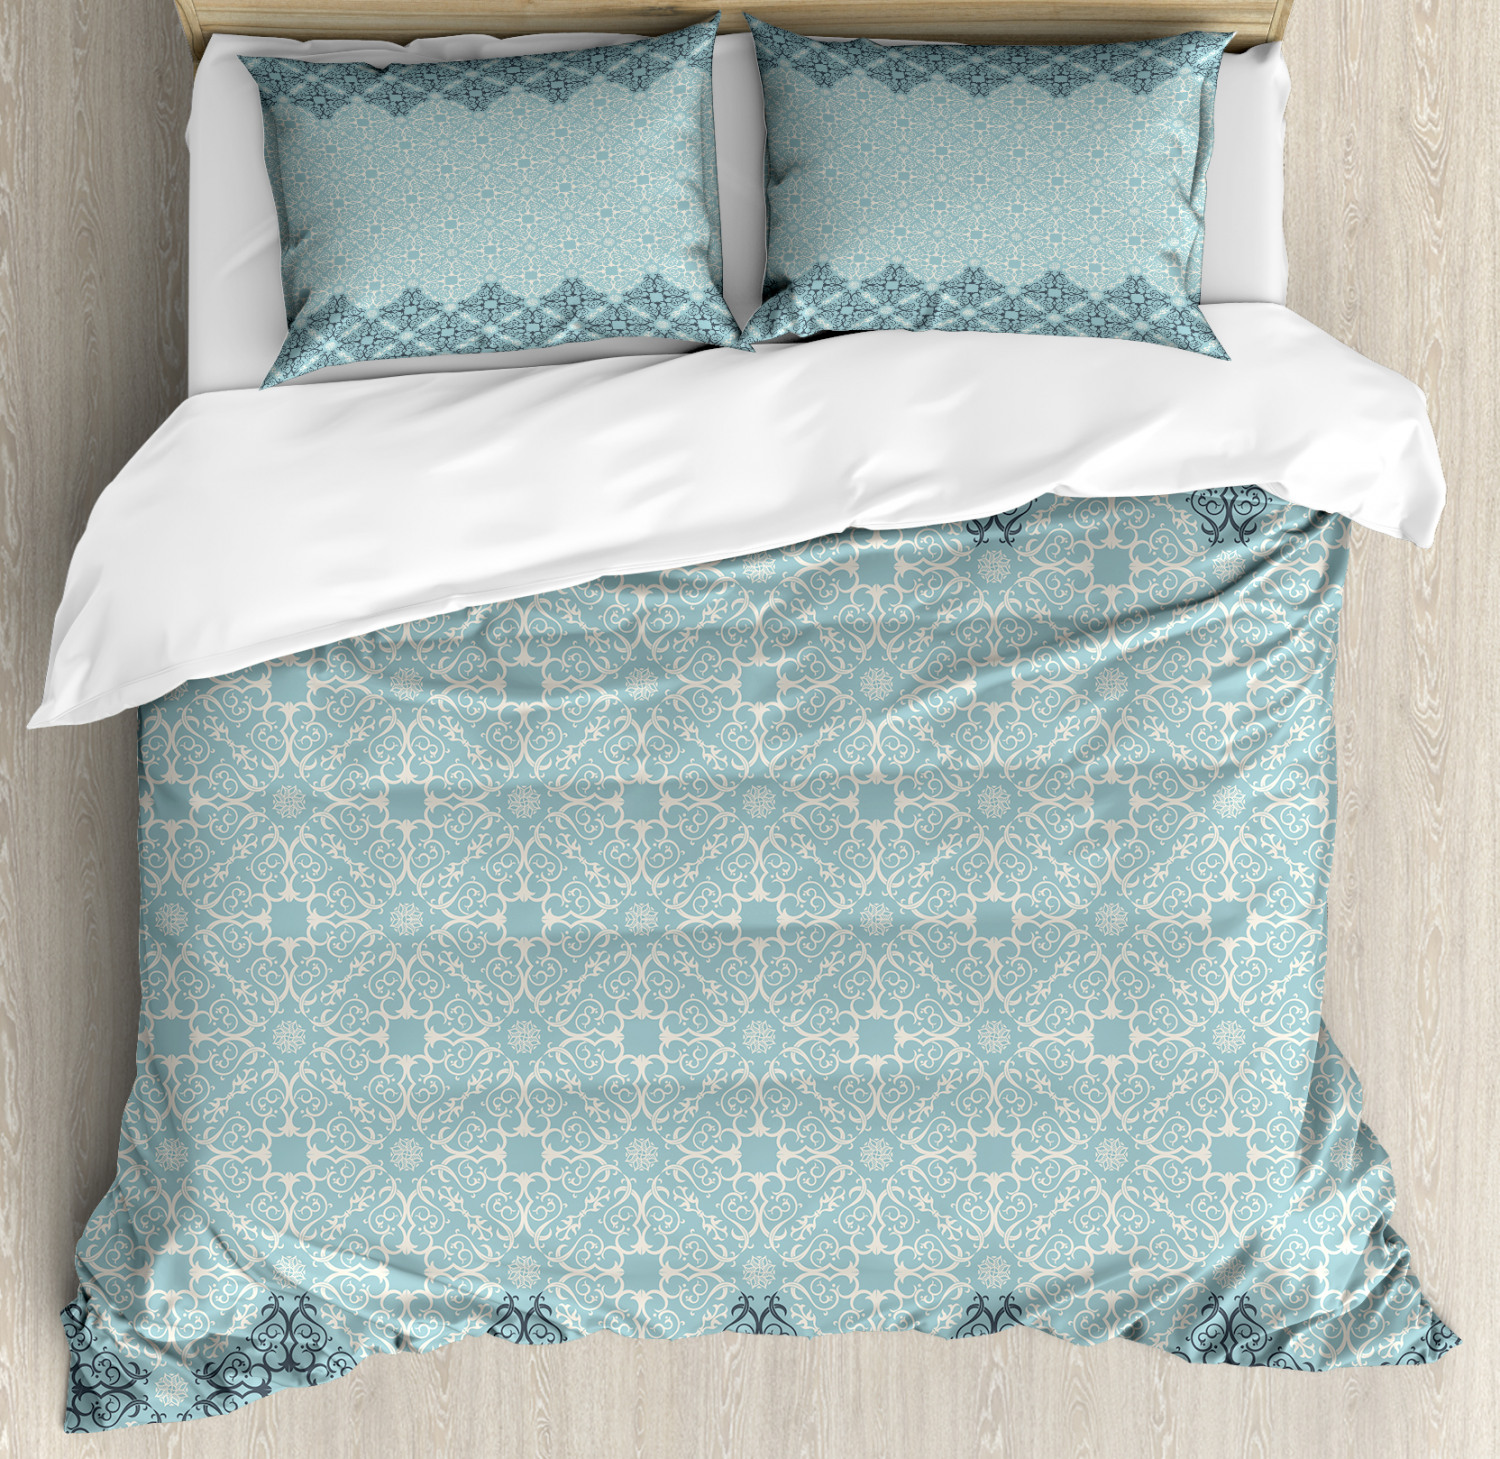 Morrocan Duvet Cover Set with Pillow Shams Ethnic Style East